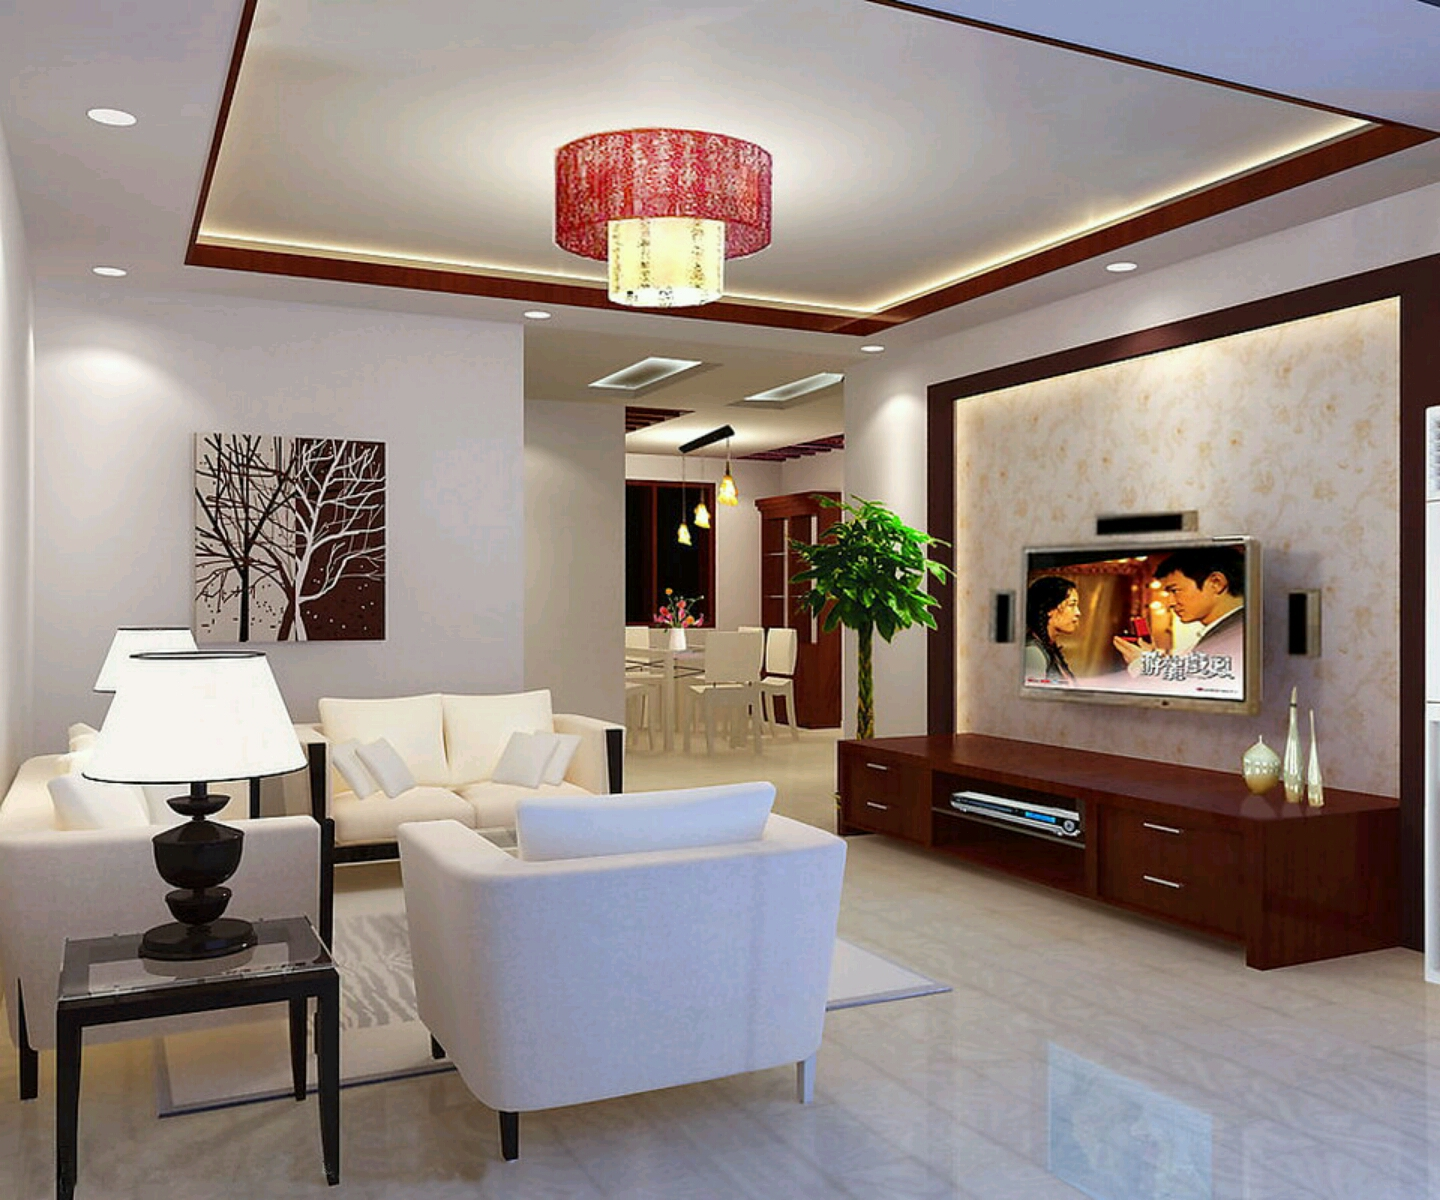 Best interior design house for Interior decoration ideas for small living room